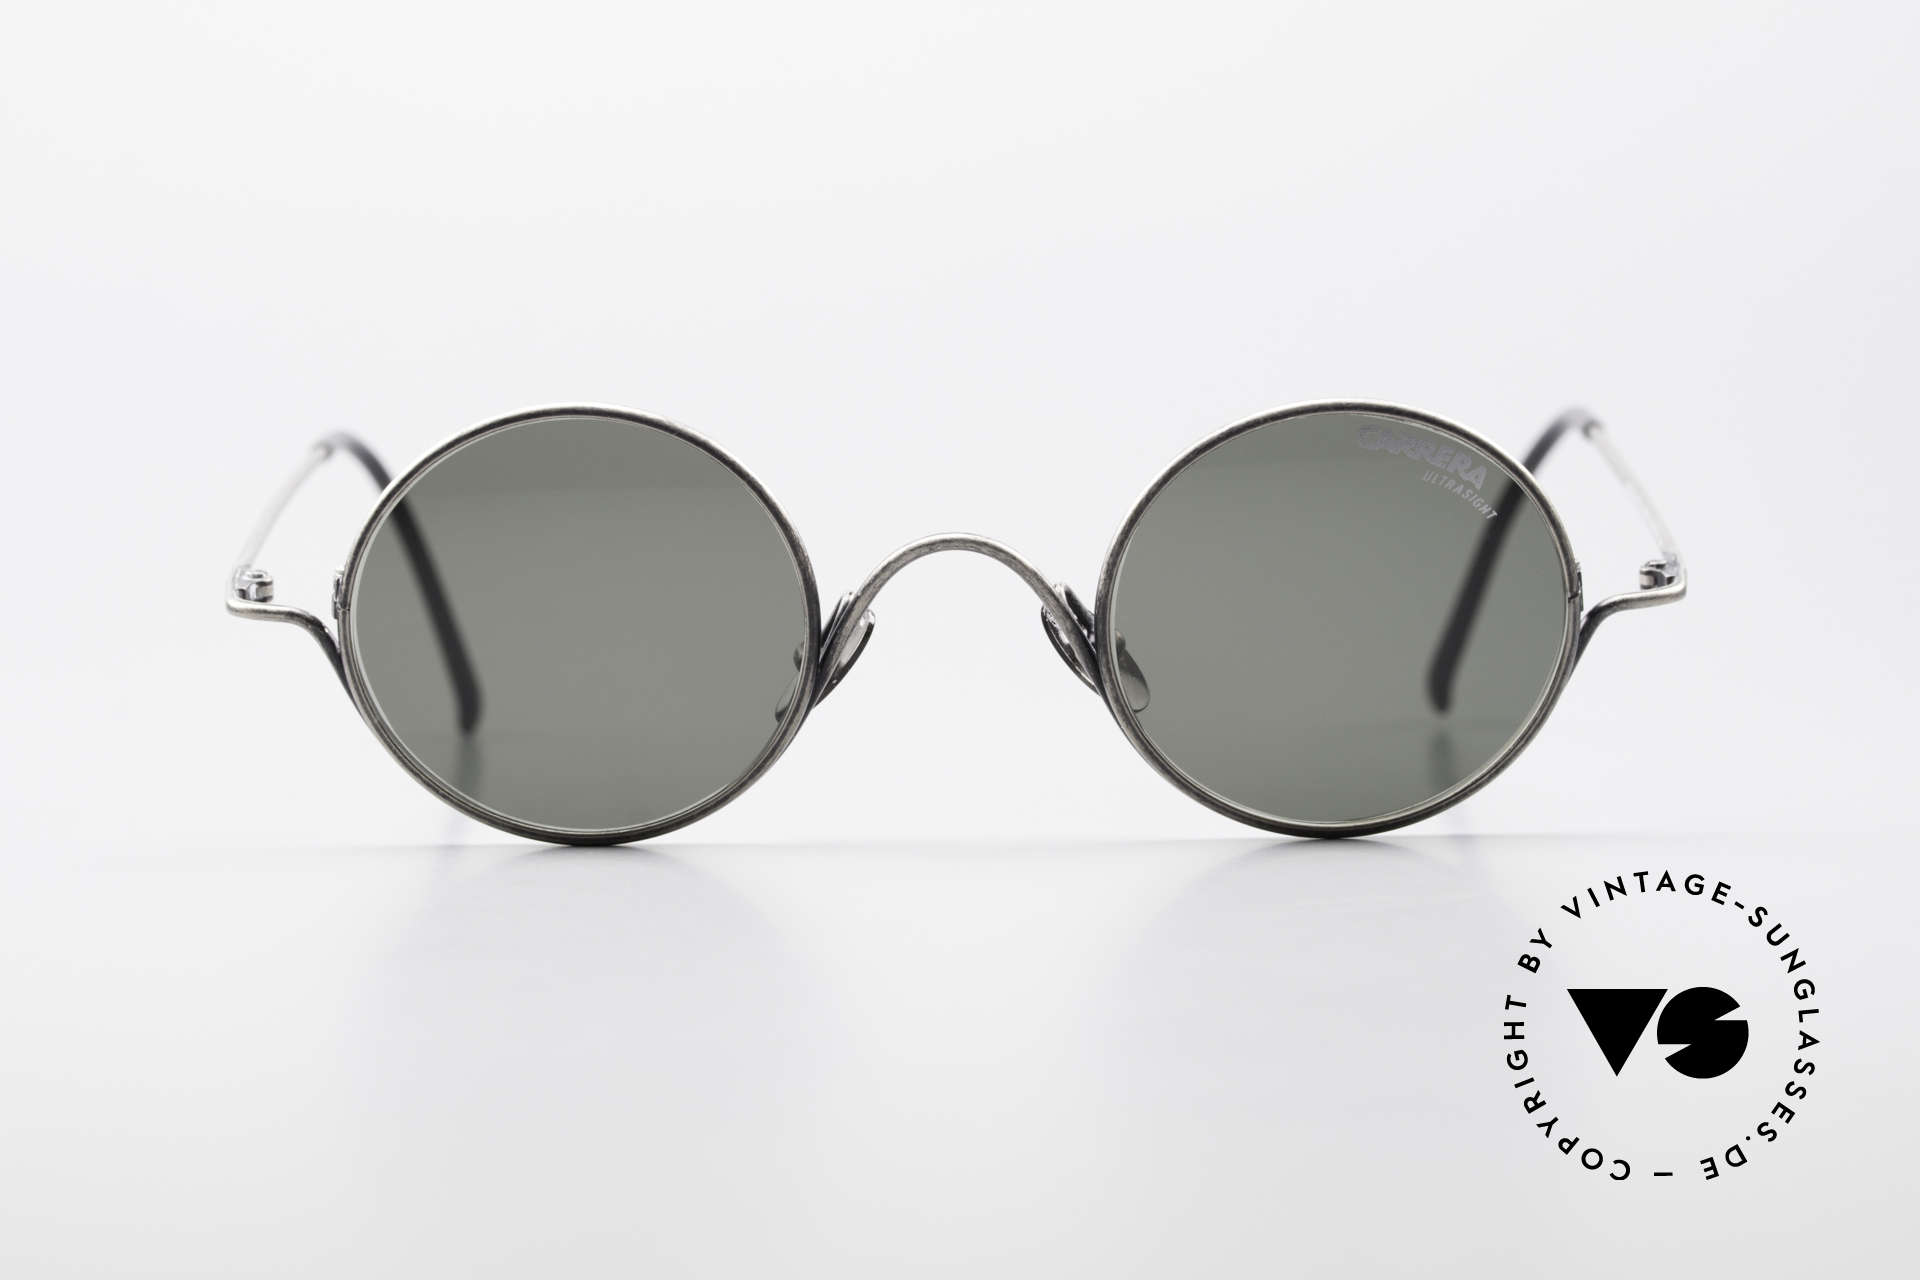 Carrera 5790 Small Round Vintage Glasses, solid frame in top-quality and 'antique metal' finish, Made for Men and Women